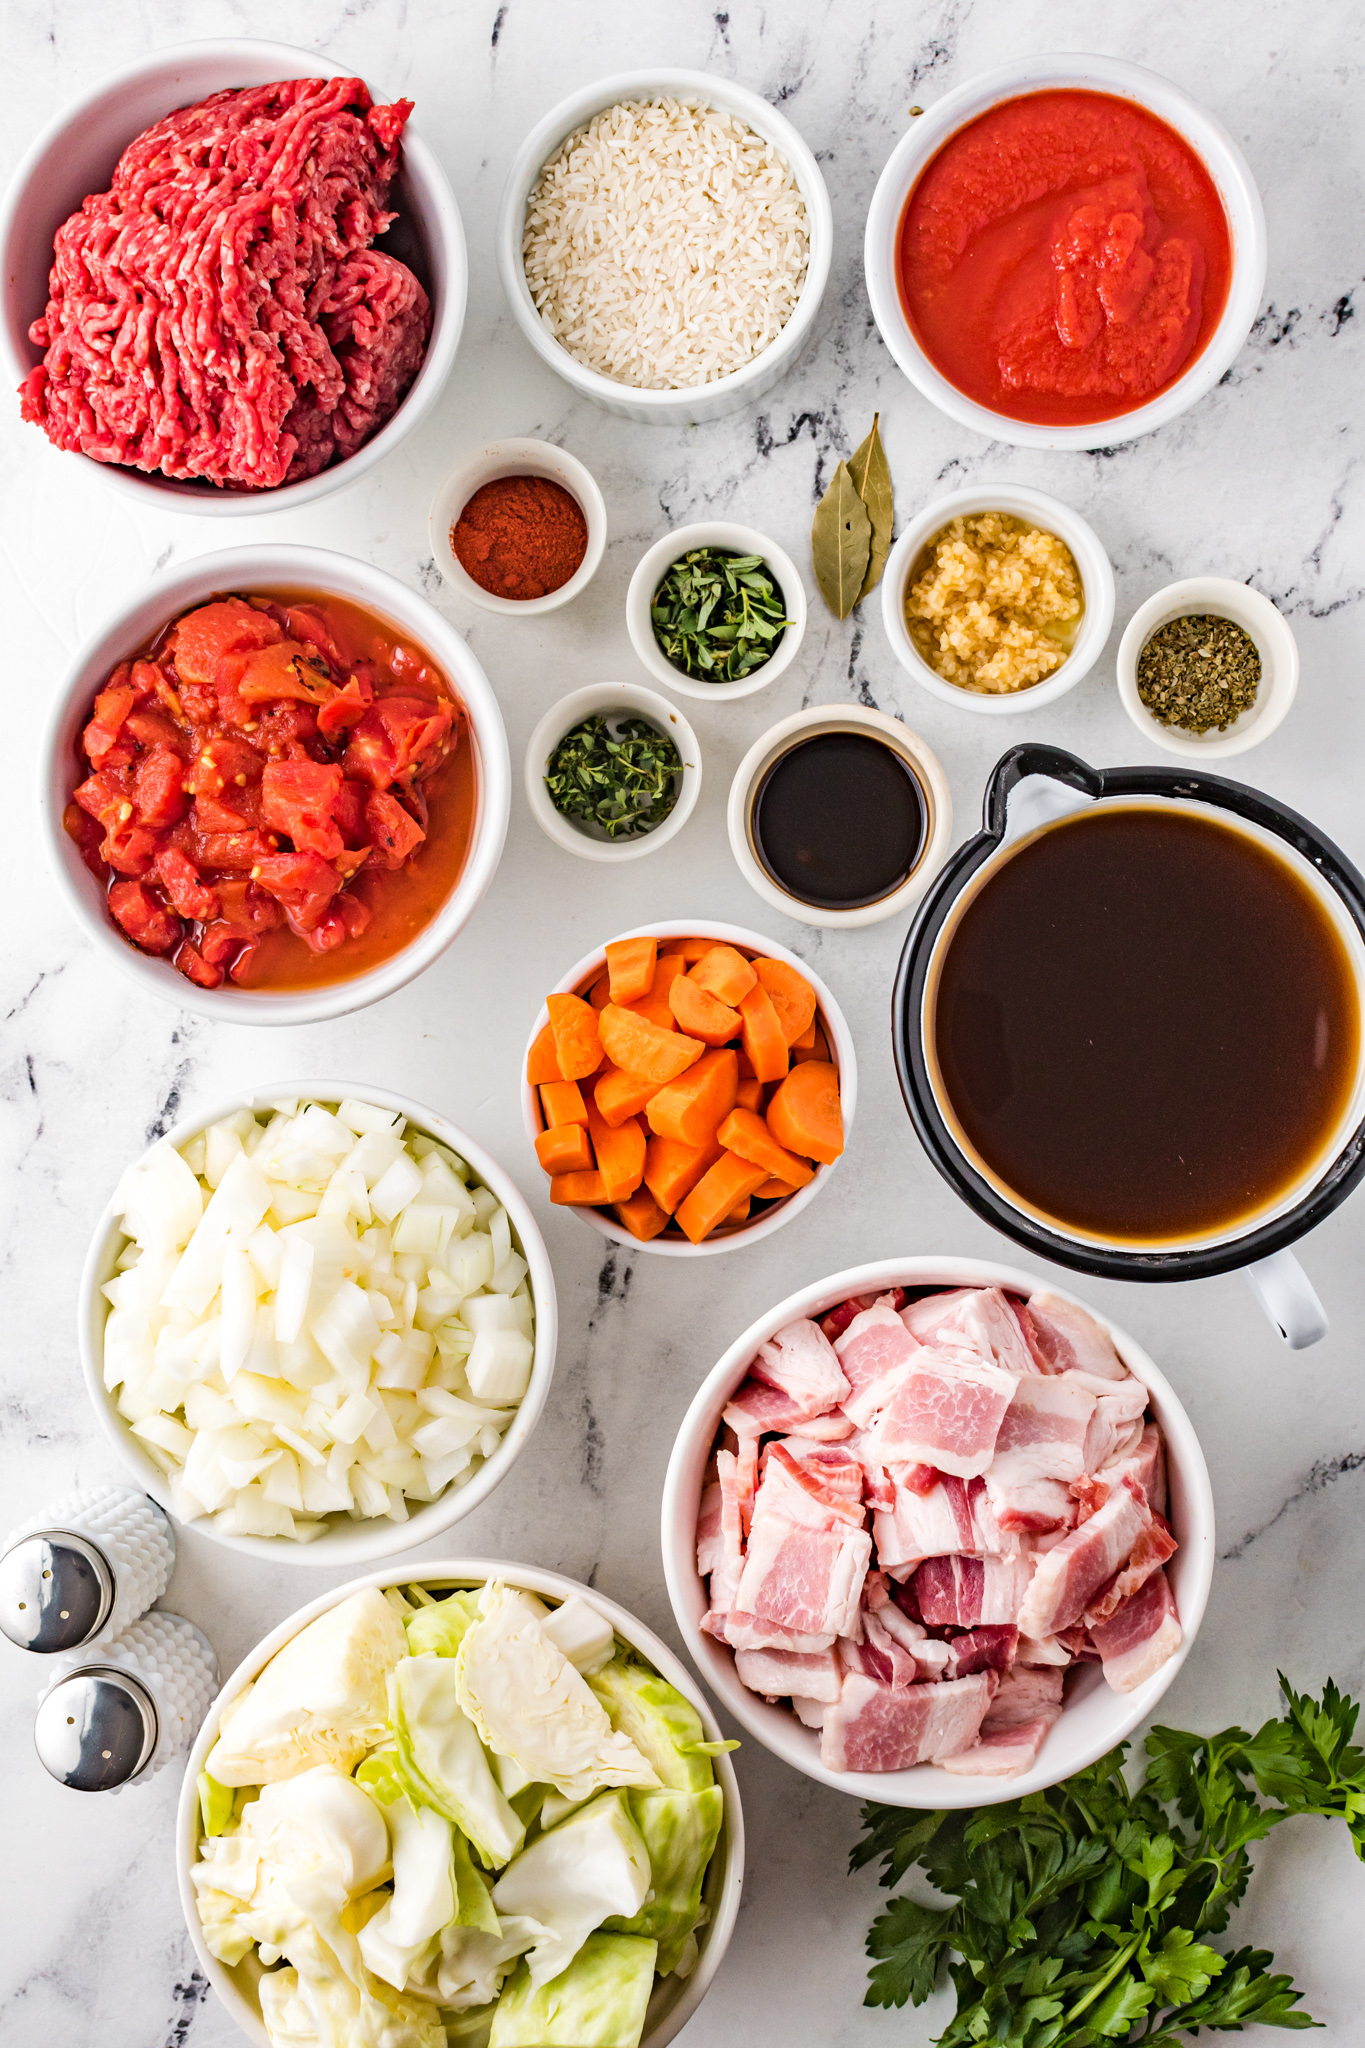 Cabbage Roll Soup ingredients.